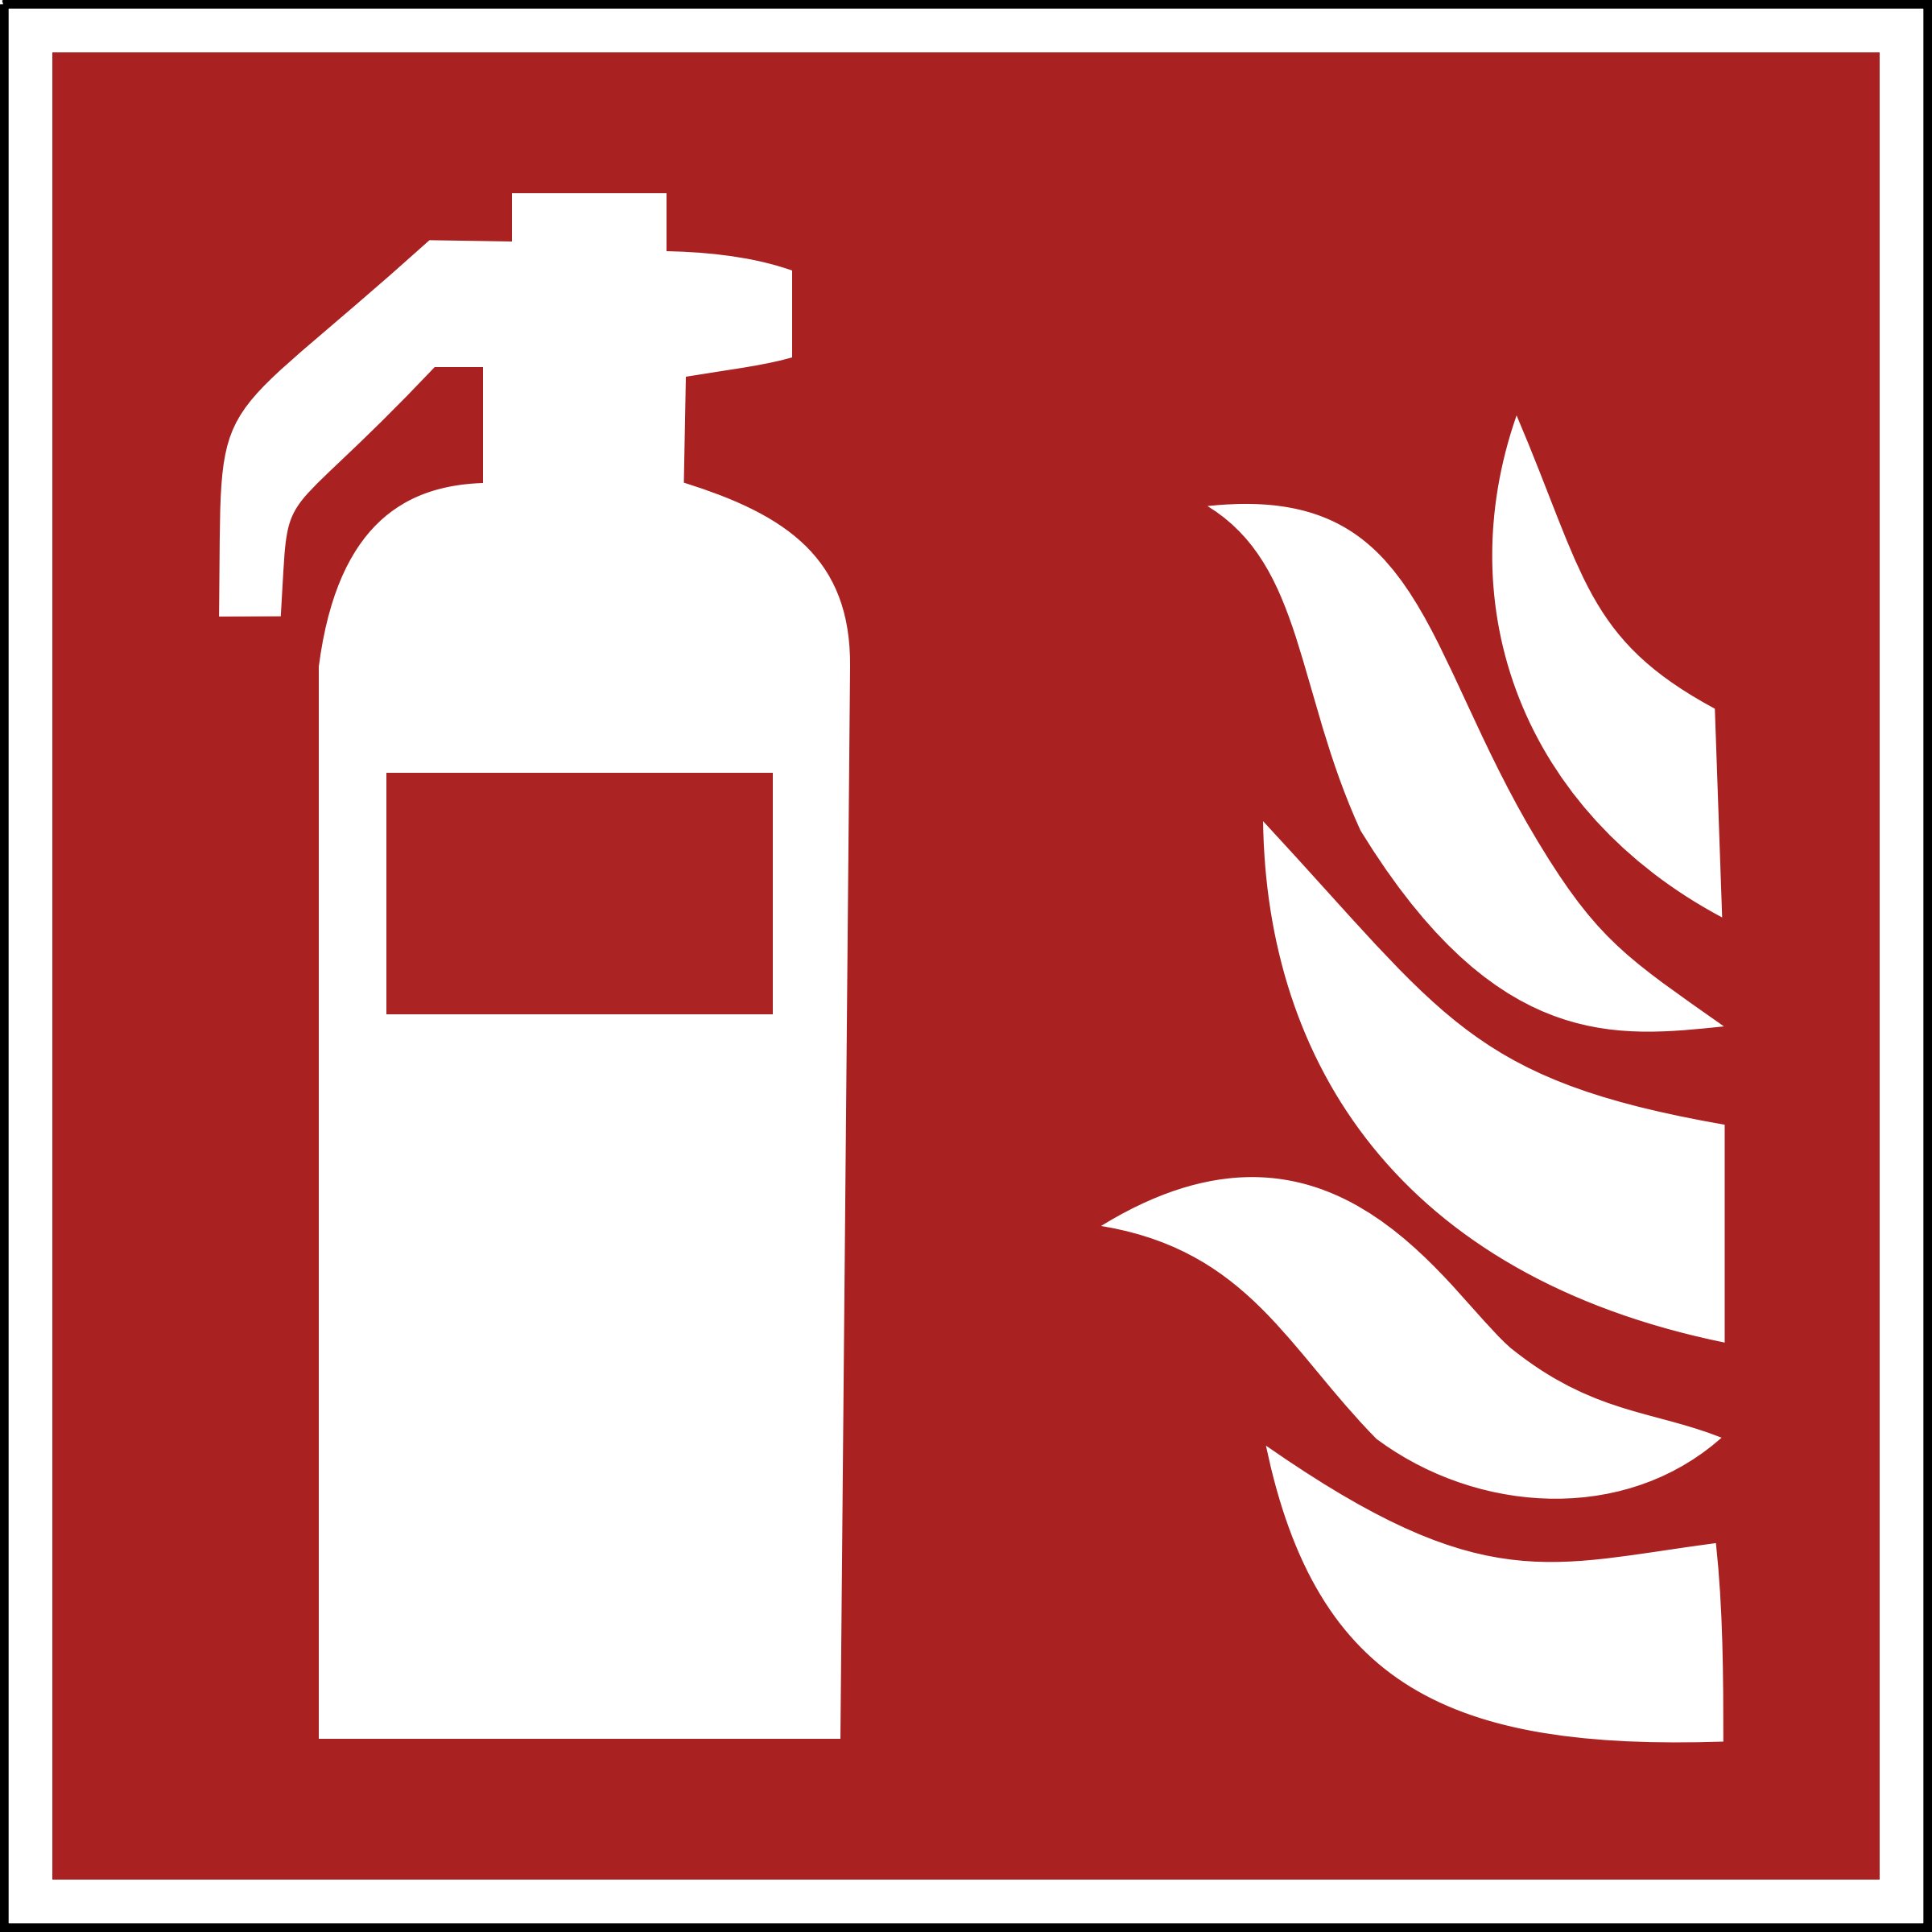 Fire Extinguisher by j4p4n